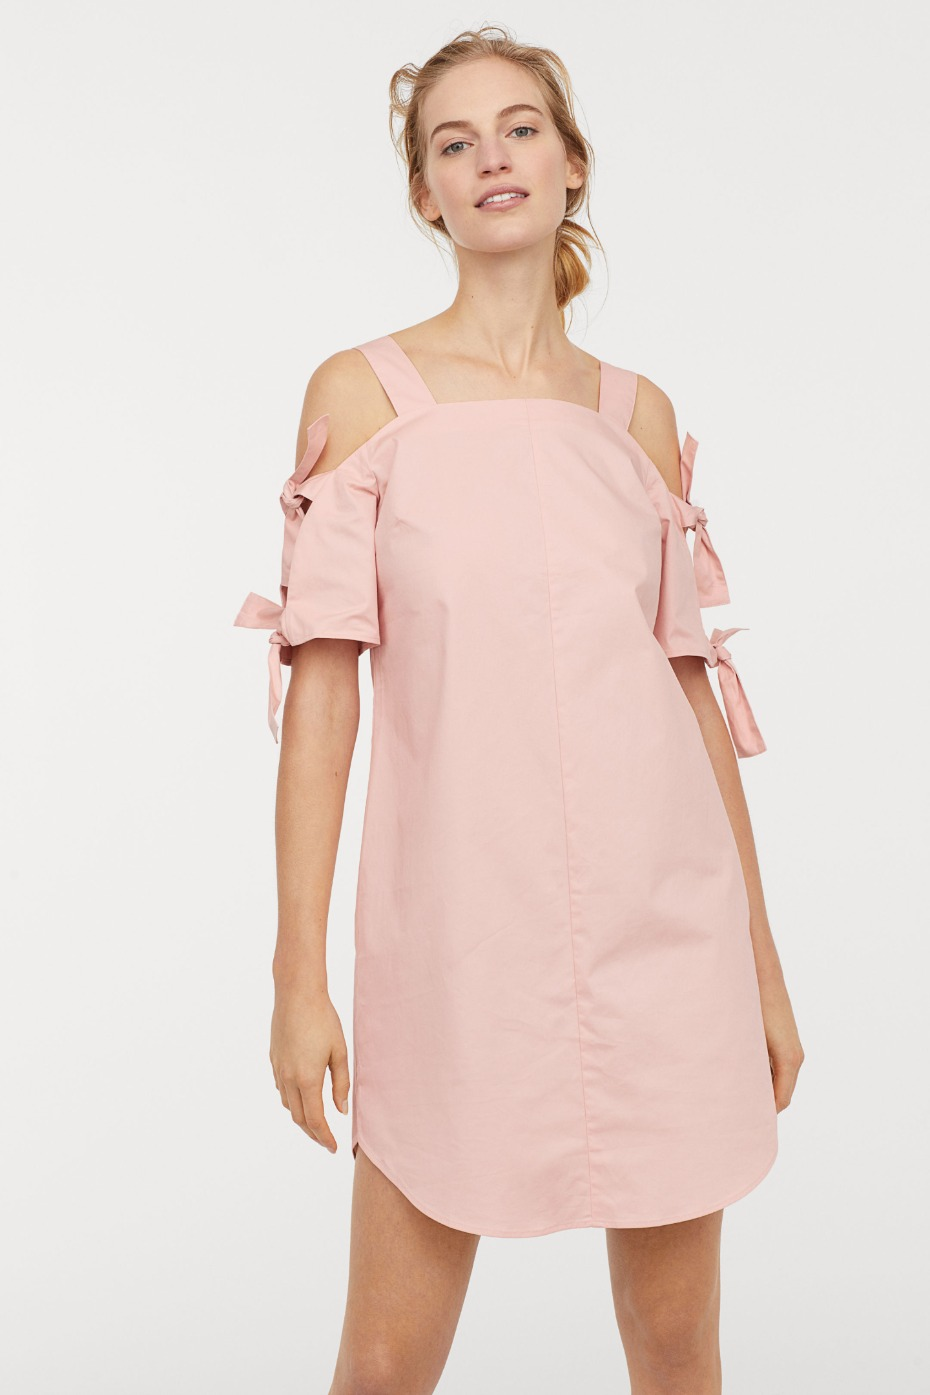 h_and_m-off-the-shoulder-pink-short-slip